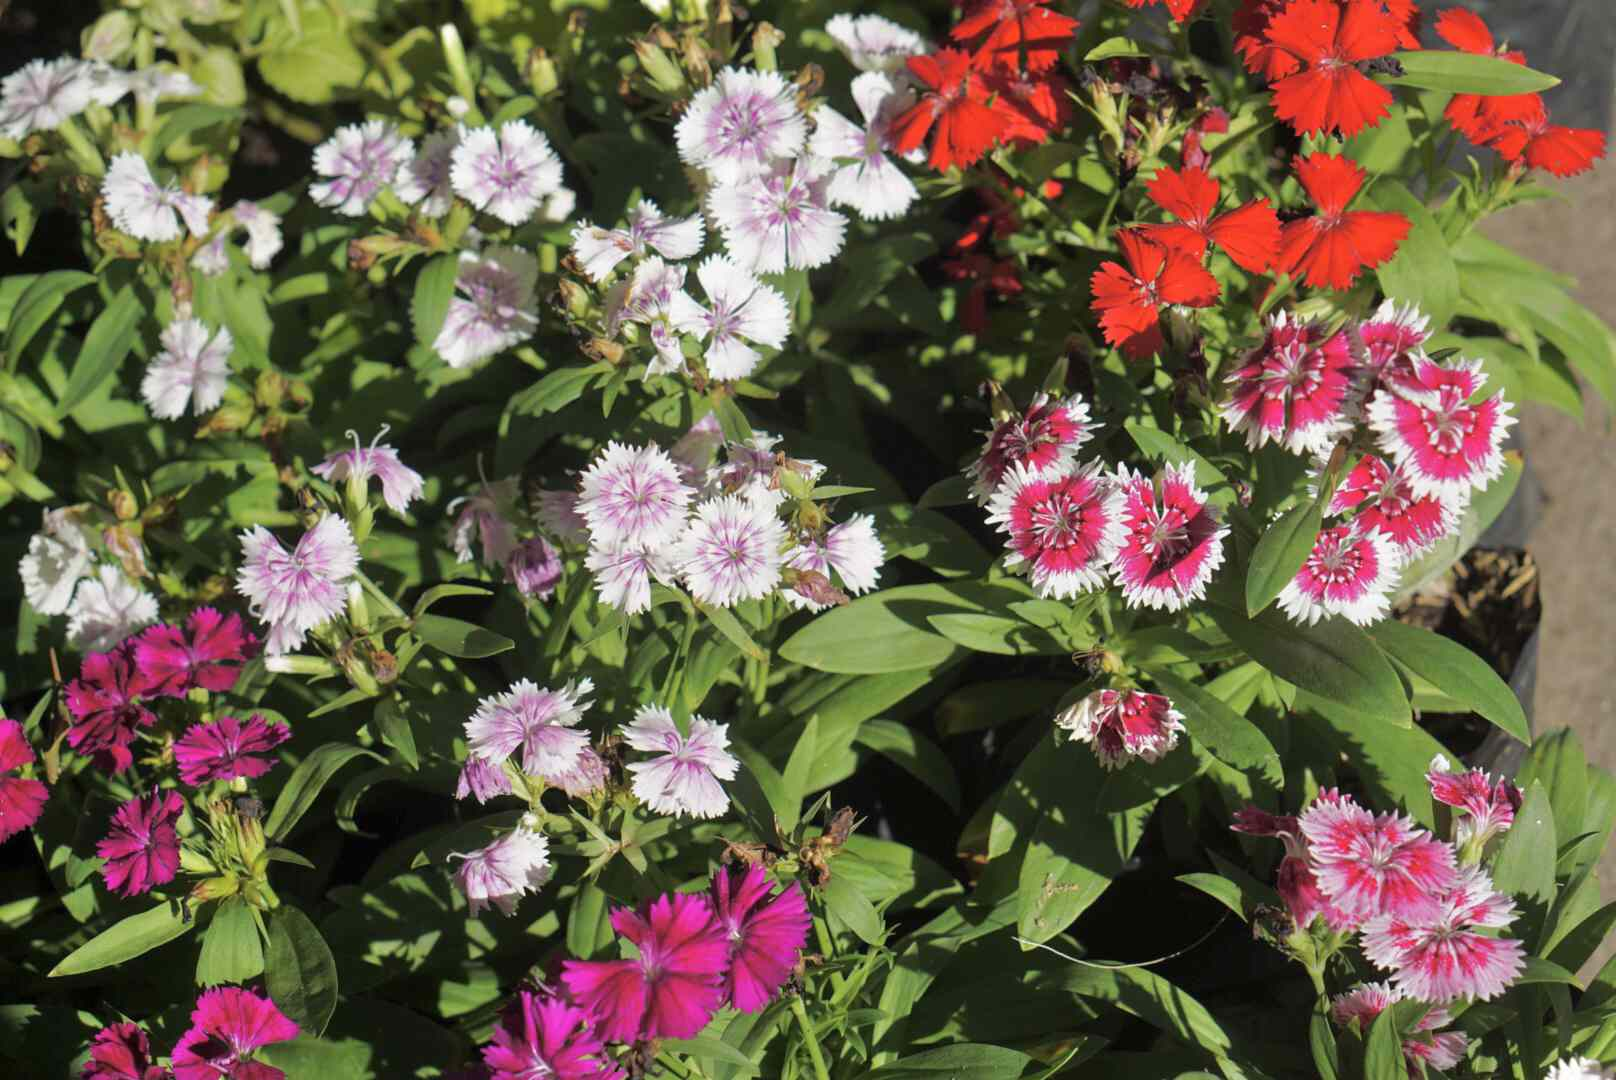 Sweet Williams plants with pink, white and red circular flowers in sun lit garden